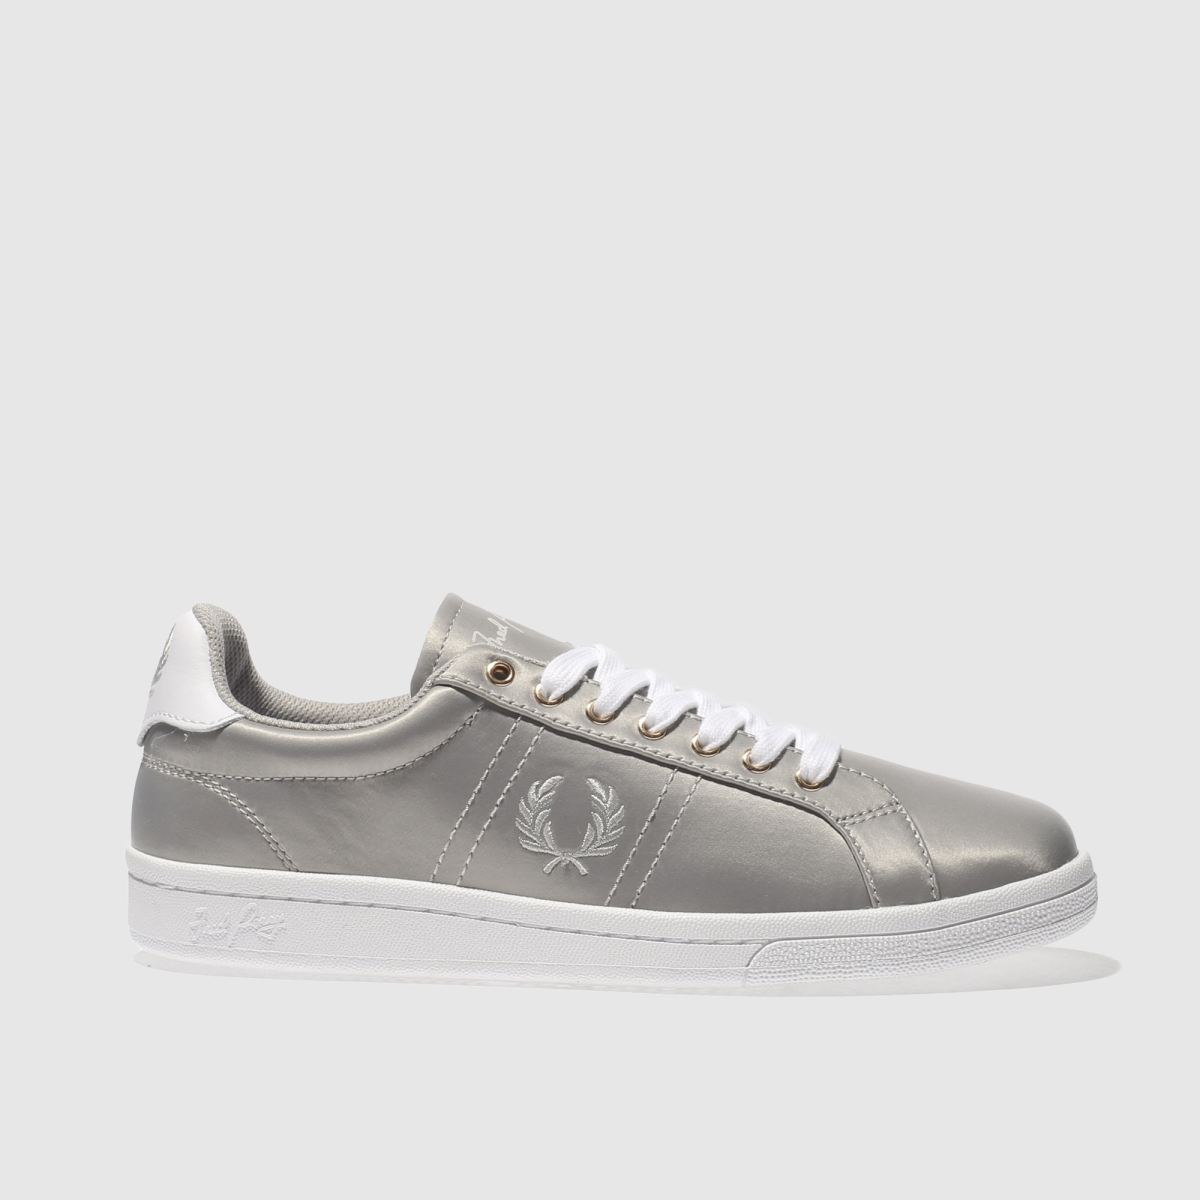 fred perry grey b721 satin trainers